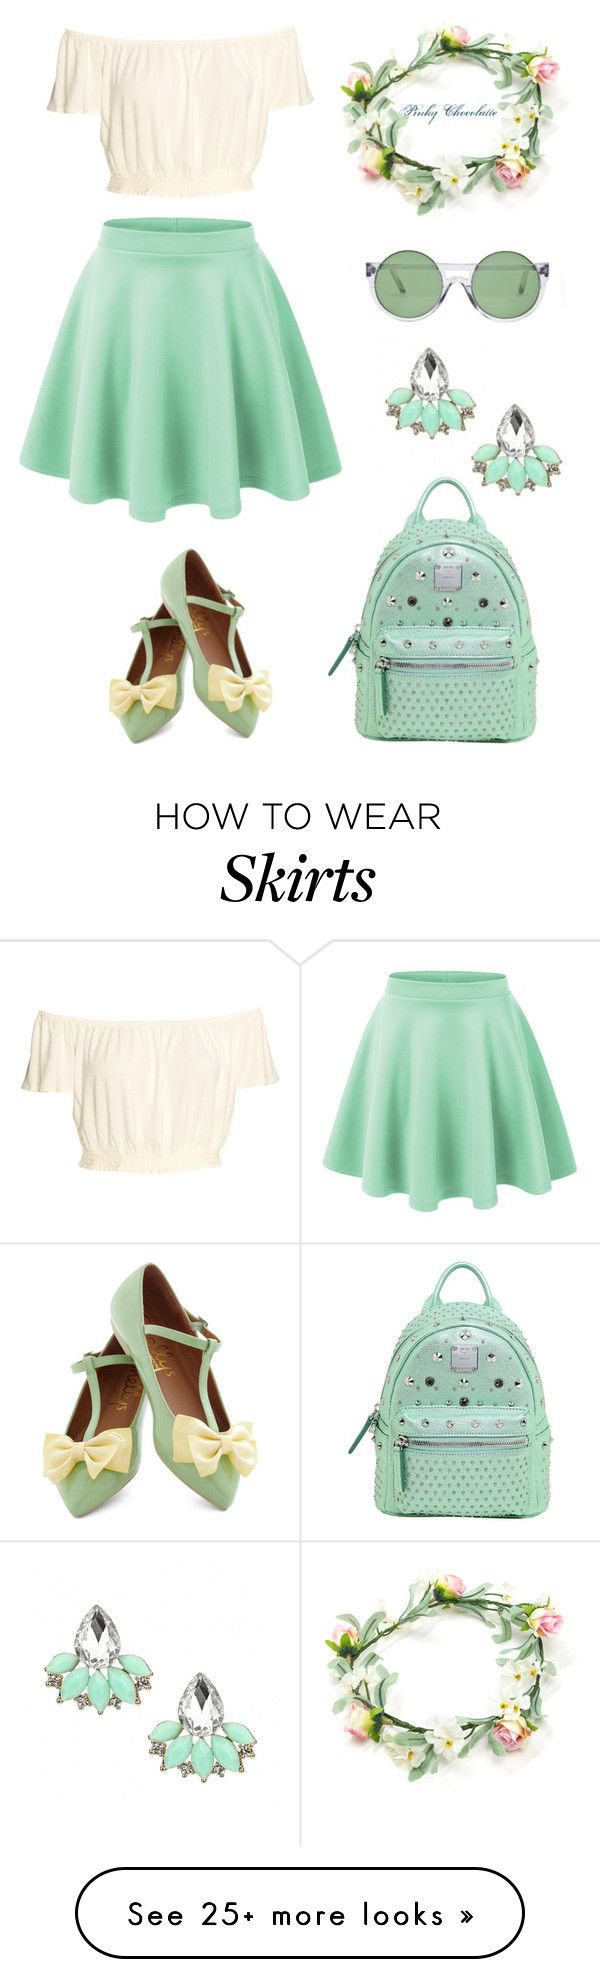 """#583 Skater Skirt Outfit: 18/04/16"" by pinky-chocolatte on Polyvore featuring Shellys, Le Specs and MCM"